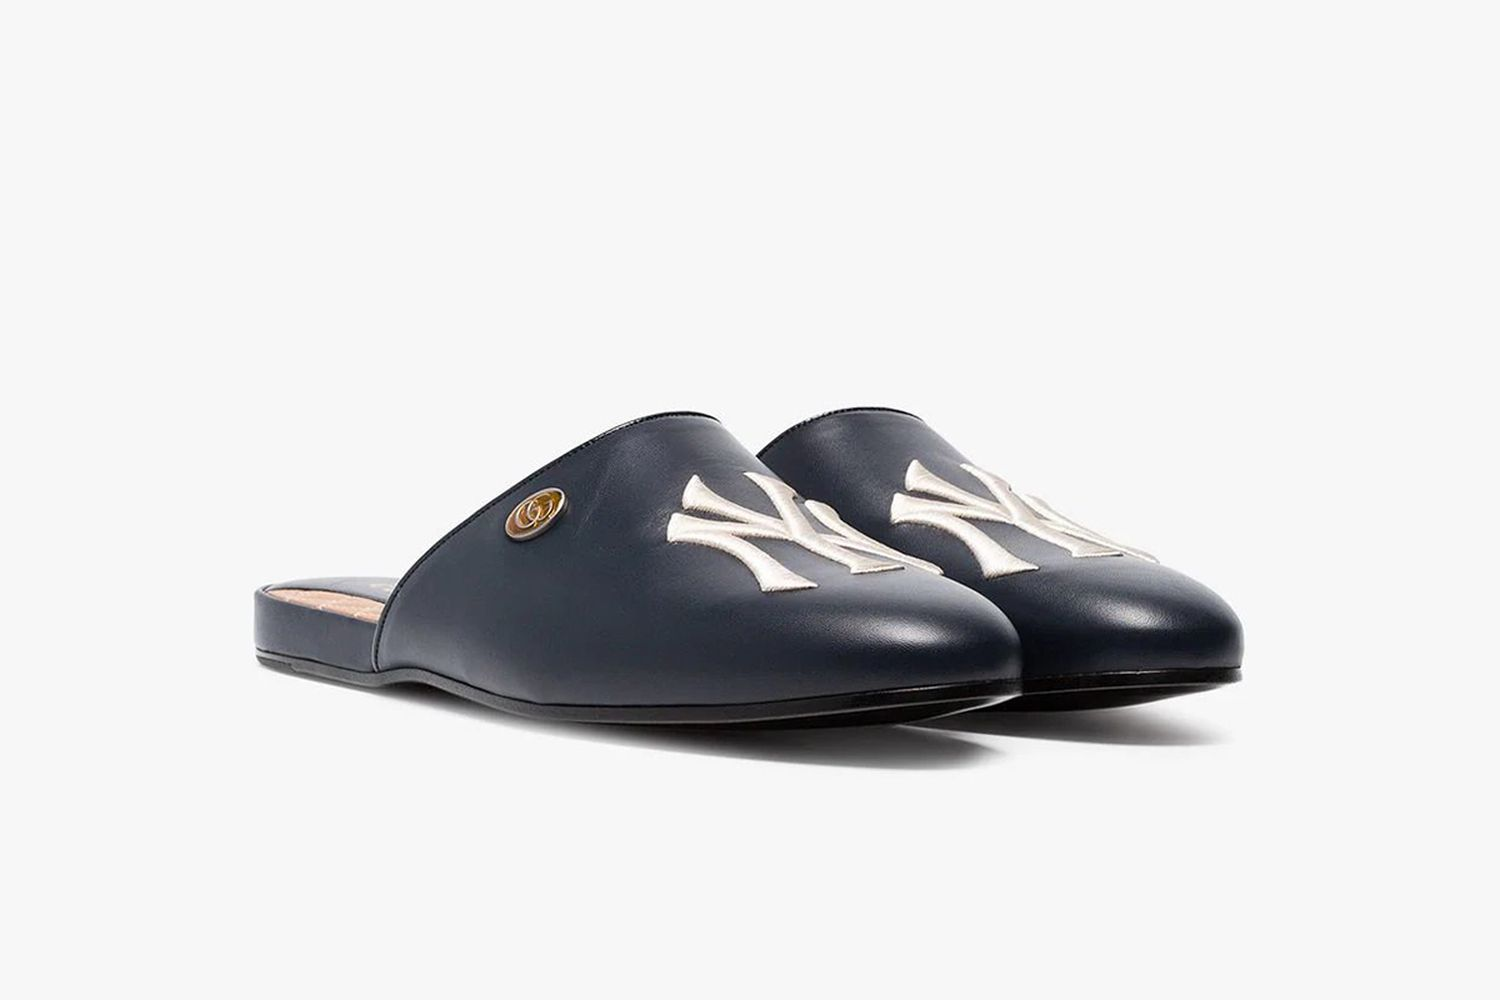 NY Yankees Leather Slippers